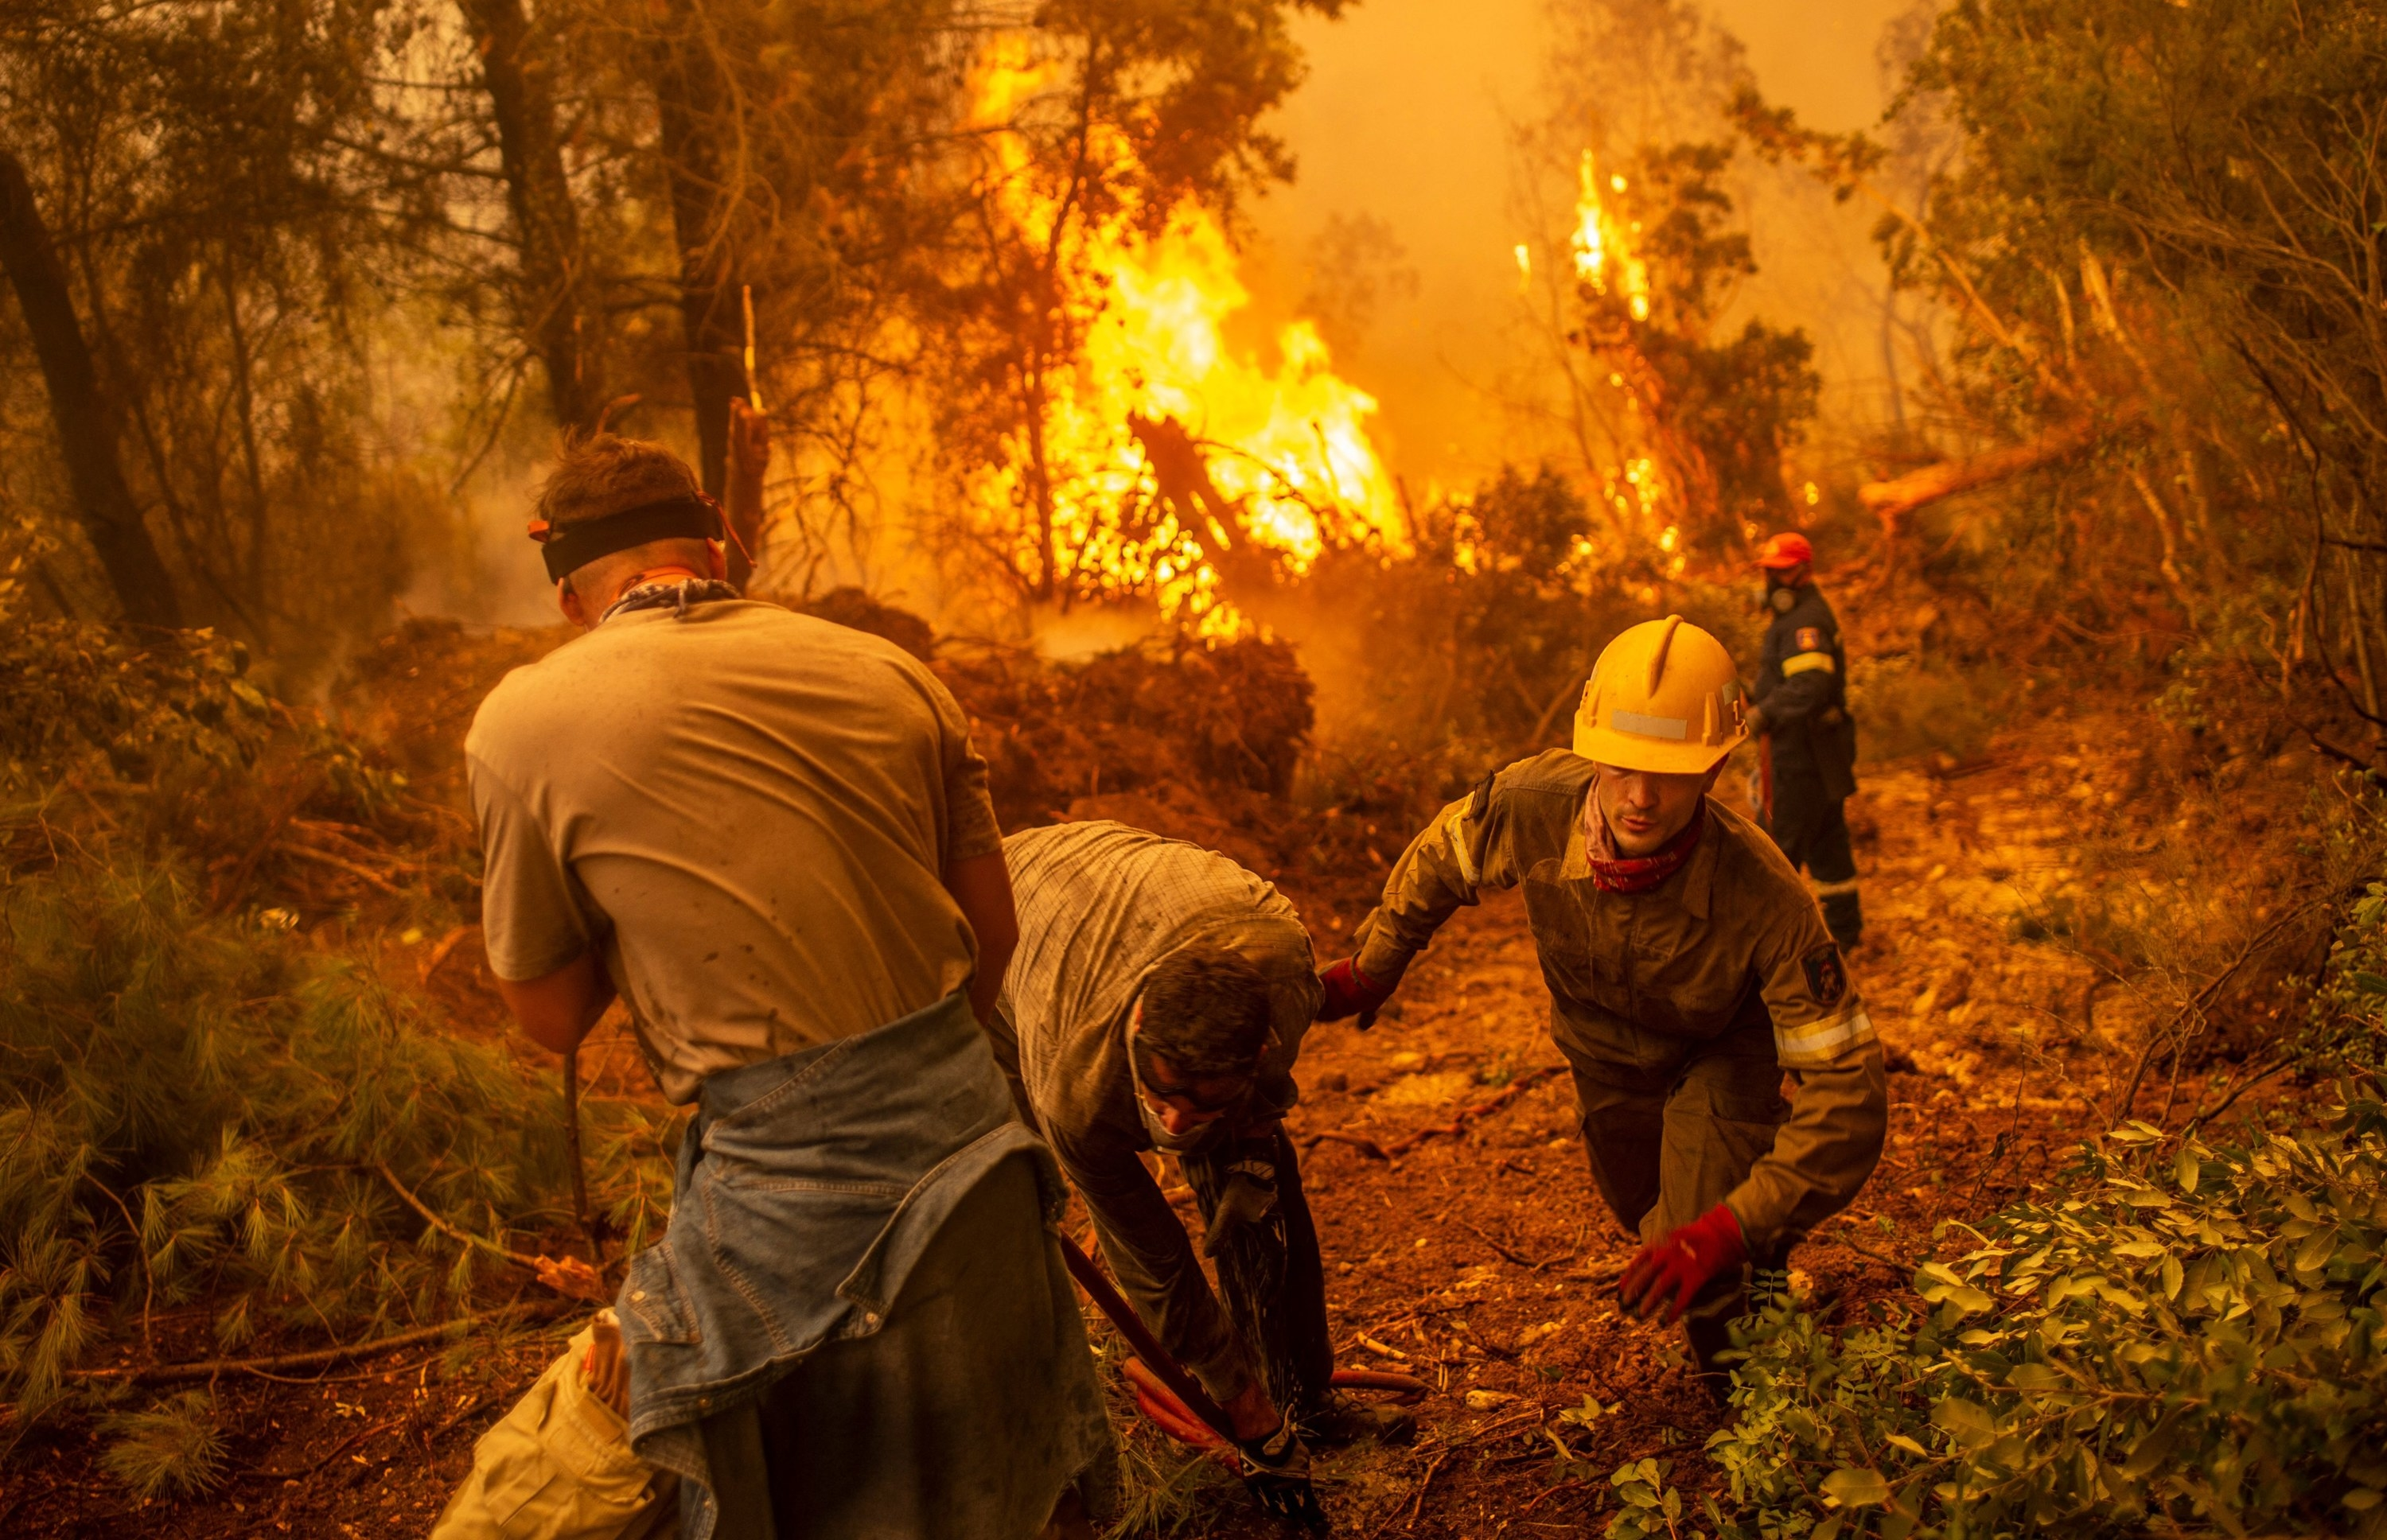 Volunteers stand by a firefighter near massive flames in the background